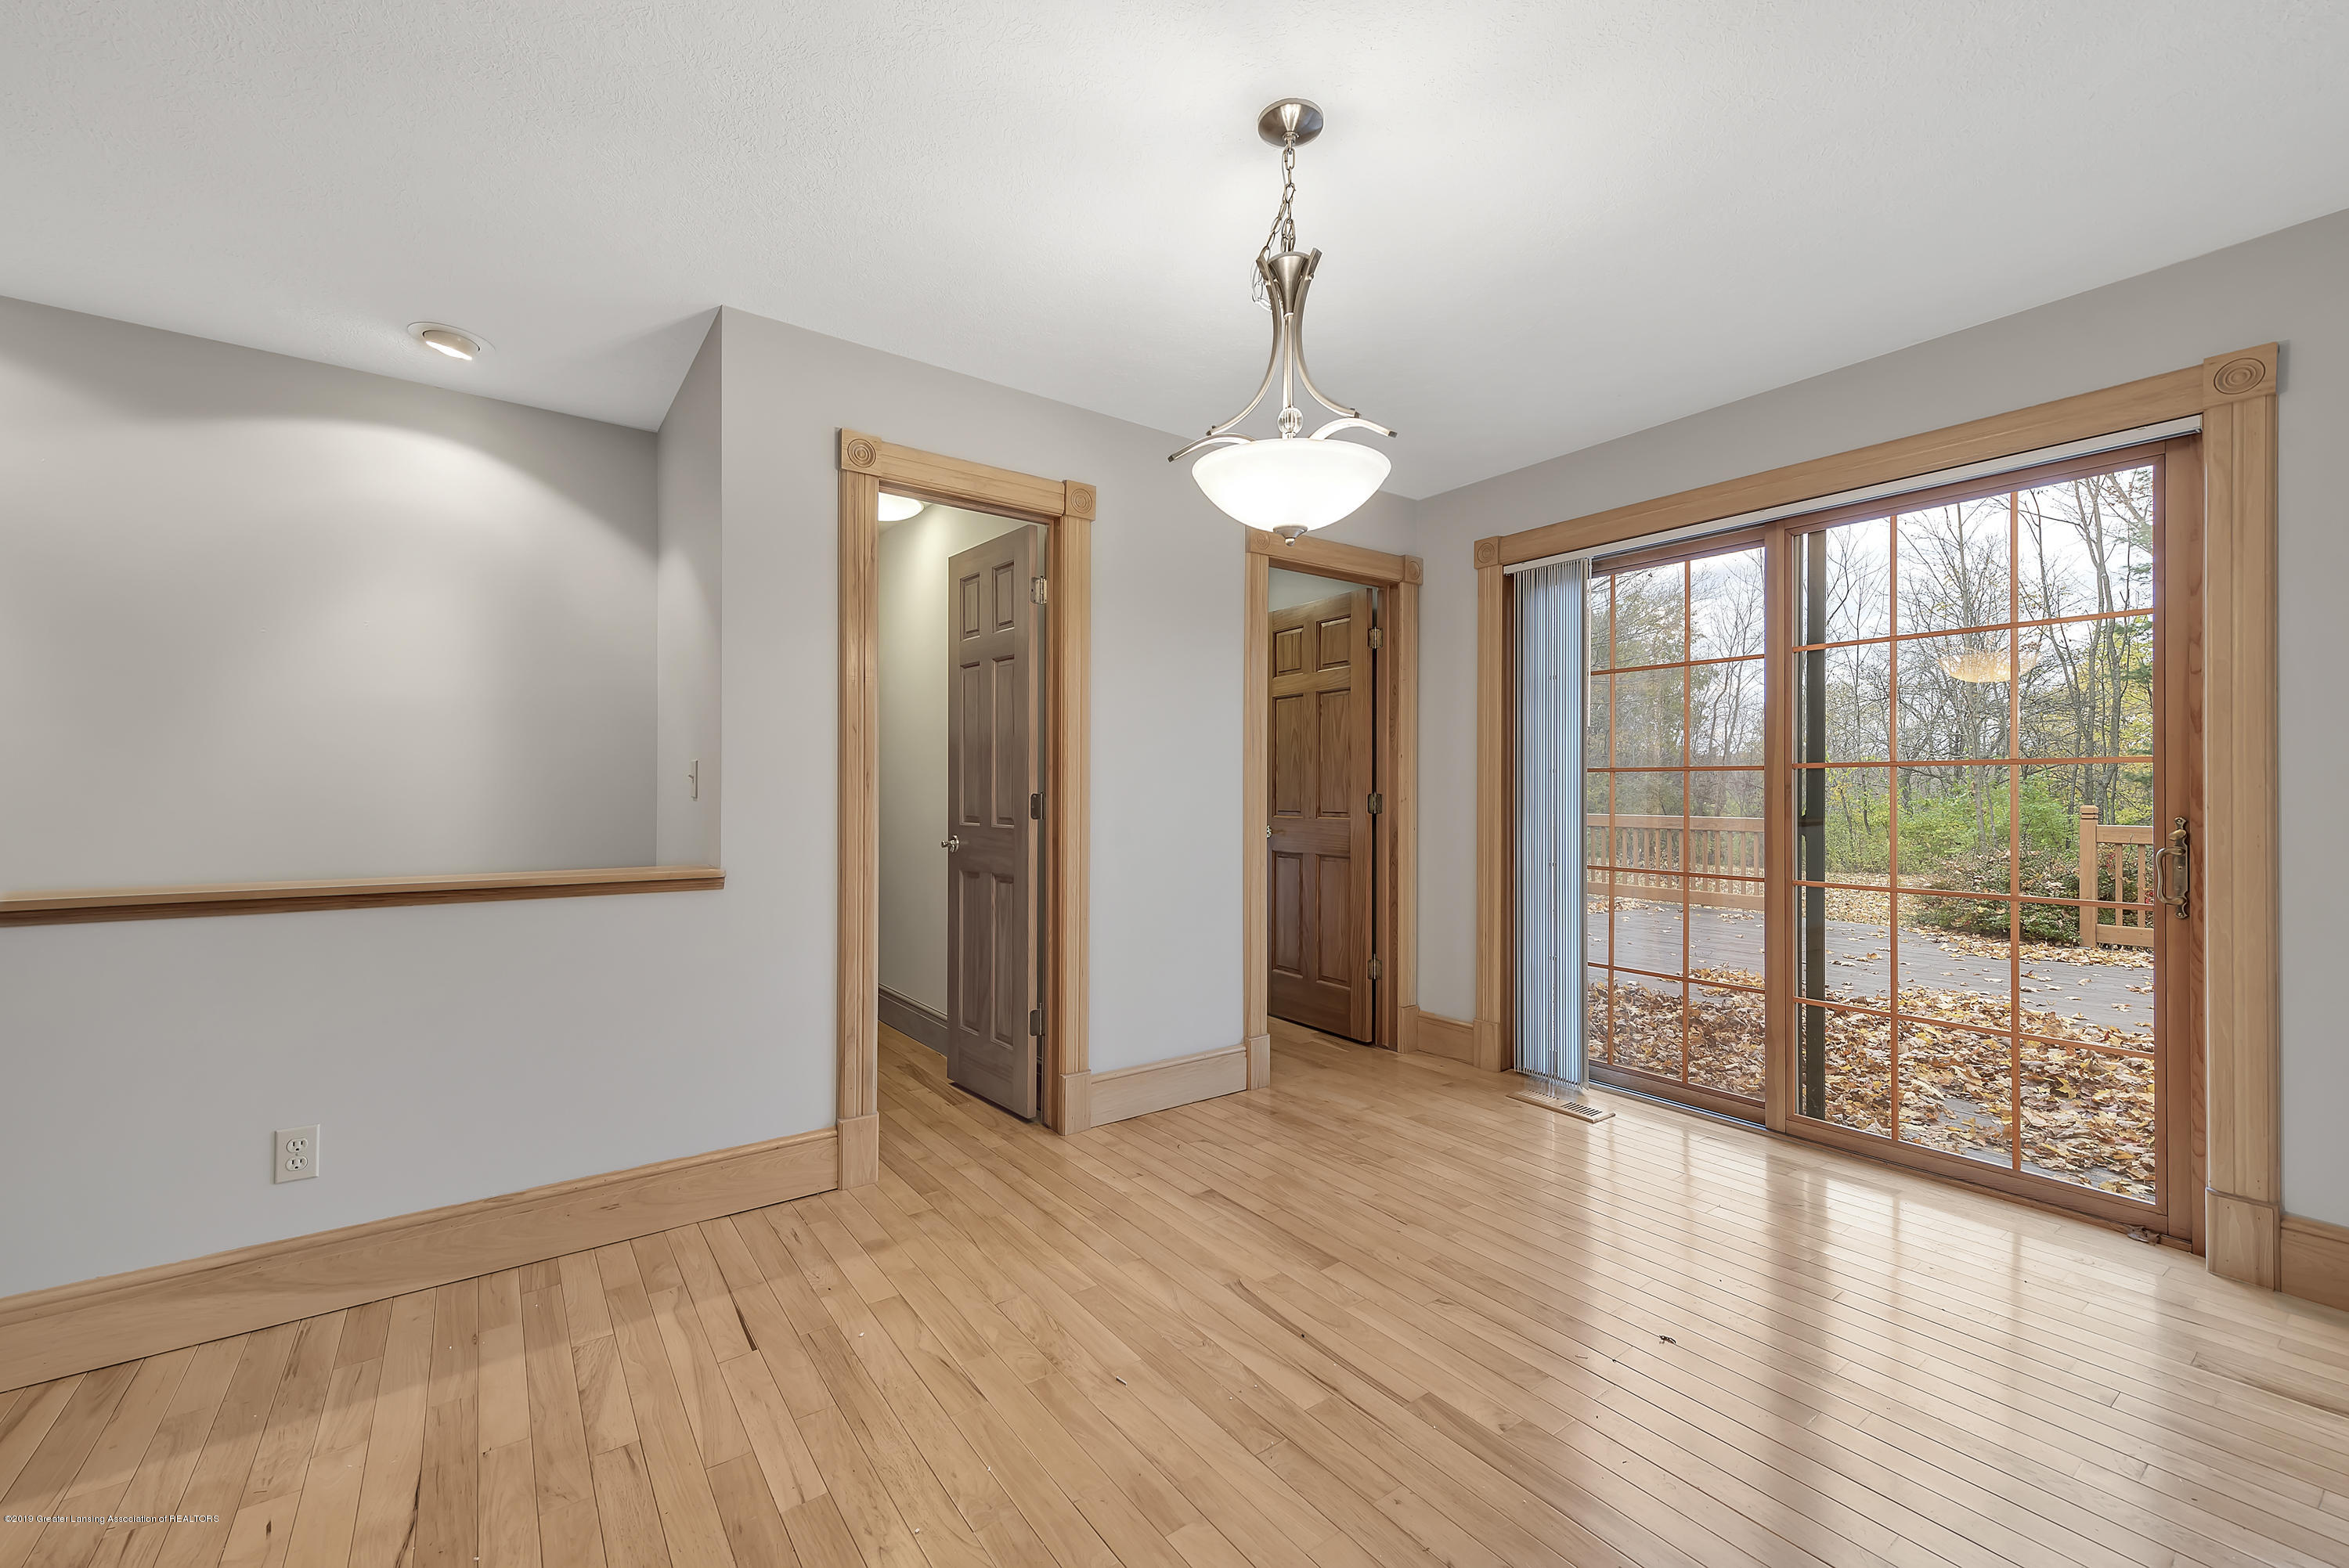 10865 Barnes Rd - 10865-Barnes-Rd-WindowStill-Real-Estate- - 17